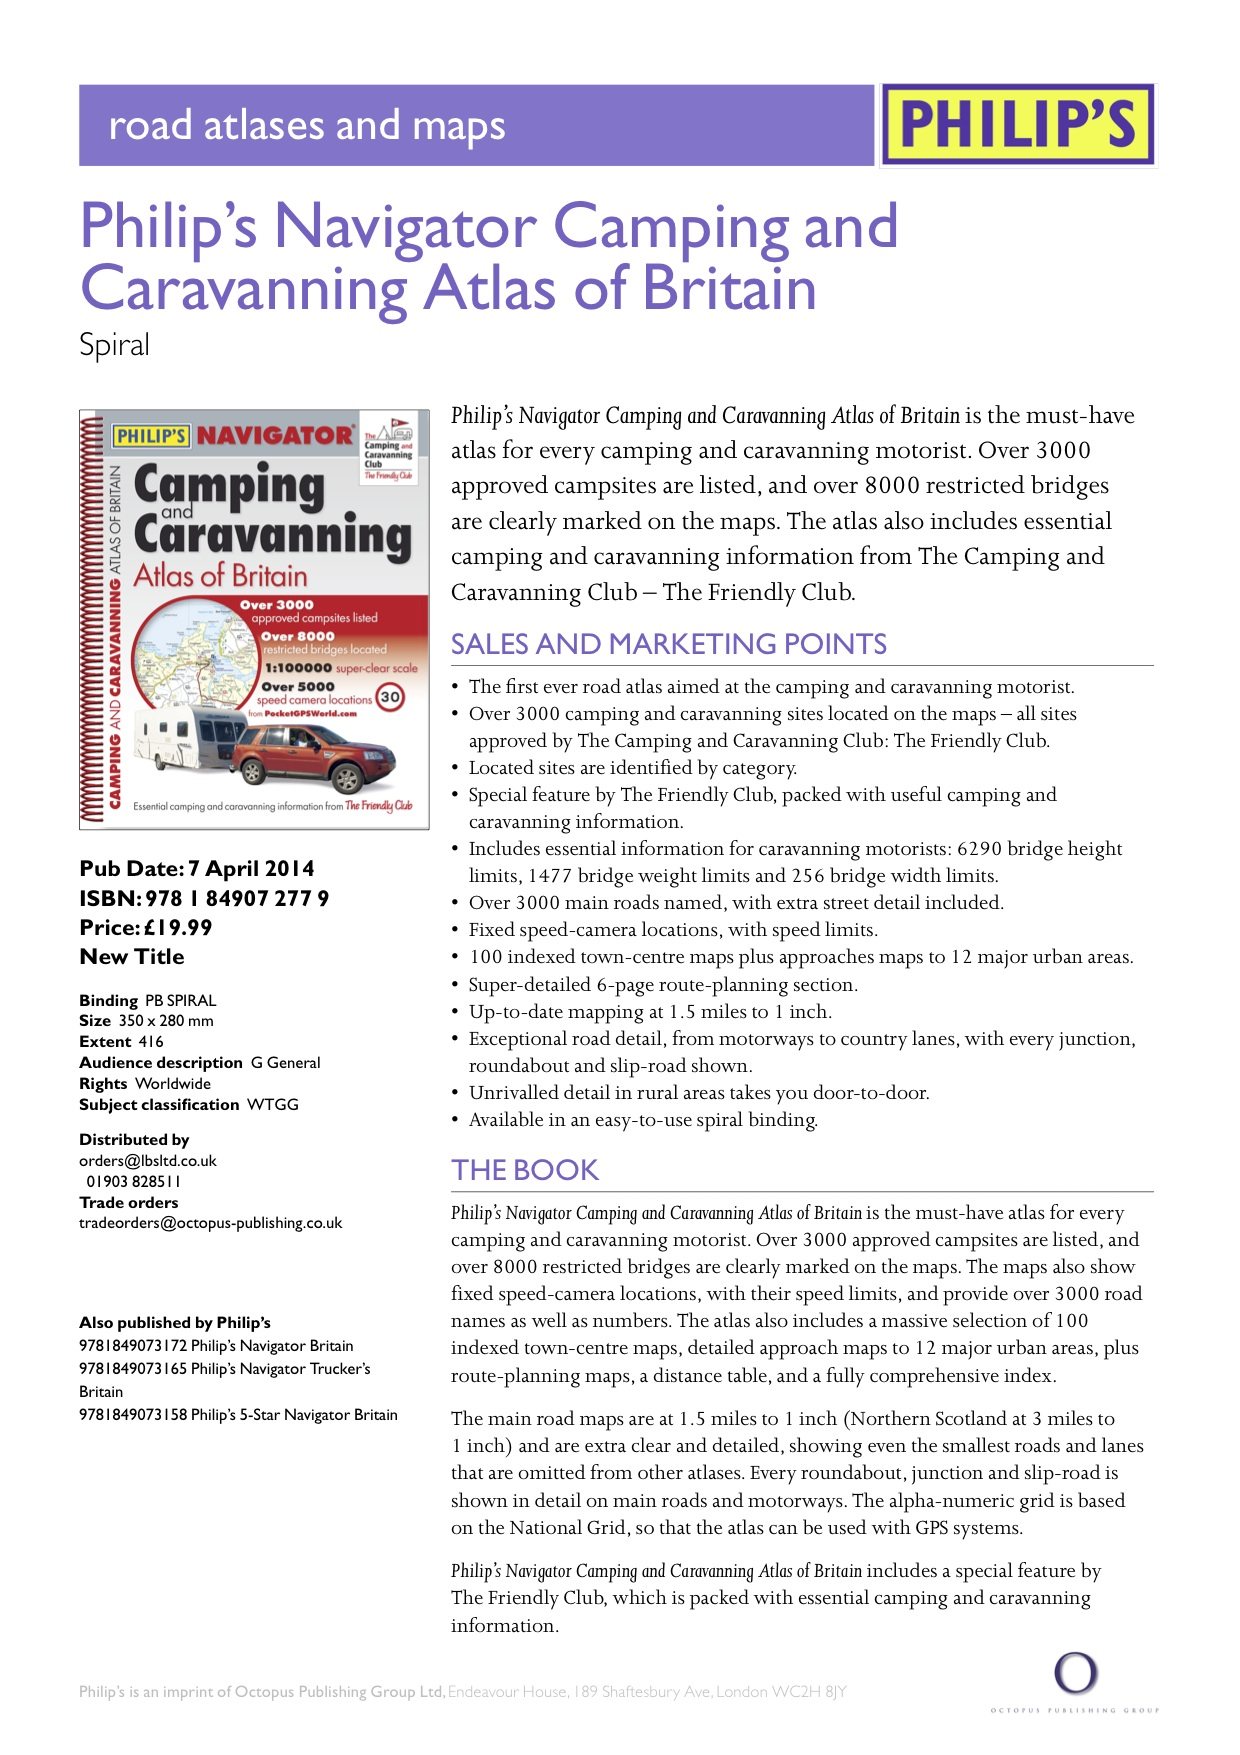 Philip's 1st edition of Navigator Camping & Caravanning Atlas of Britain